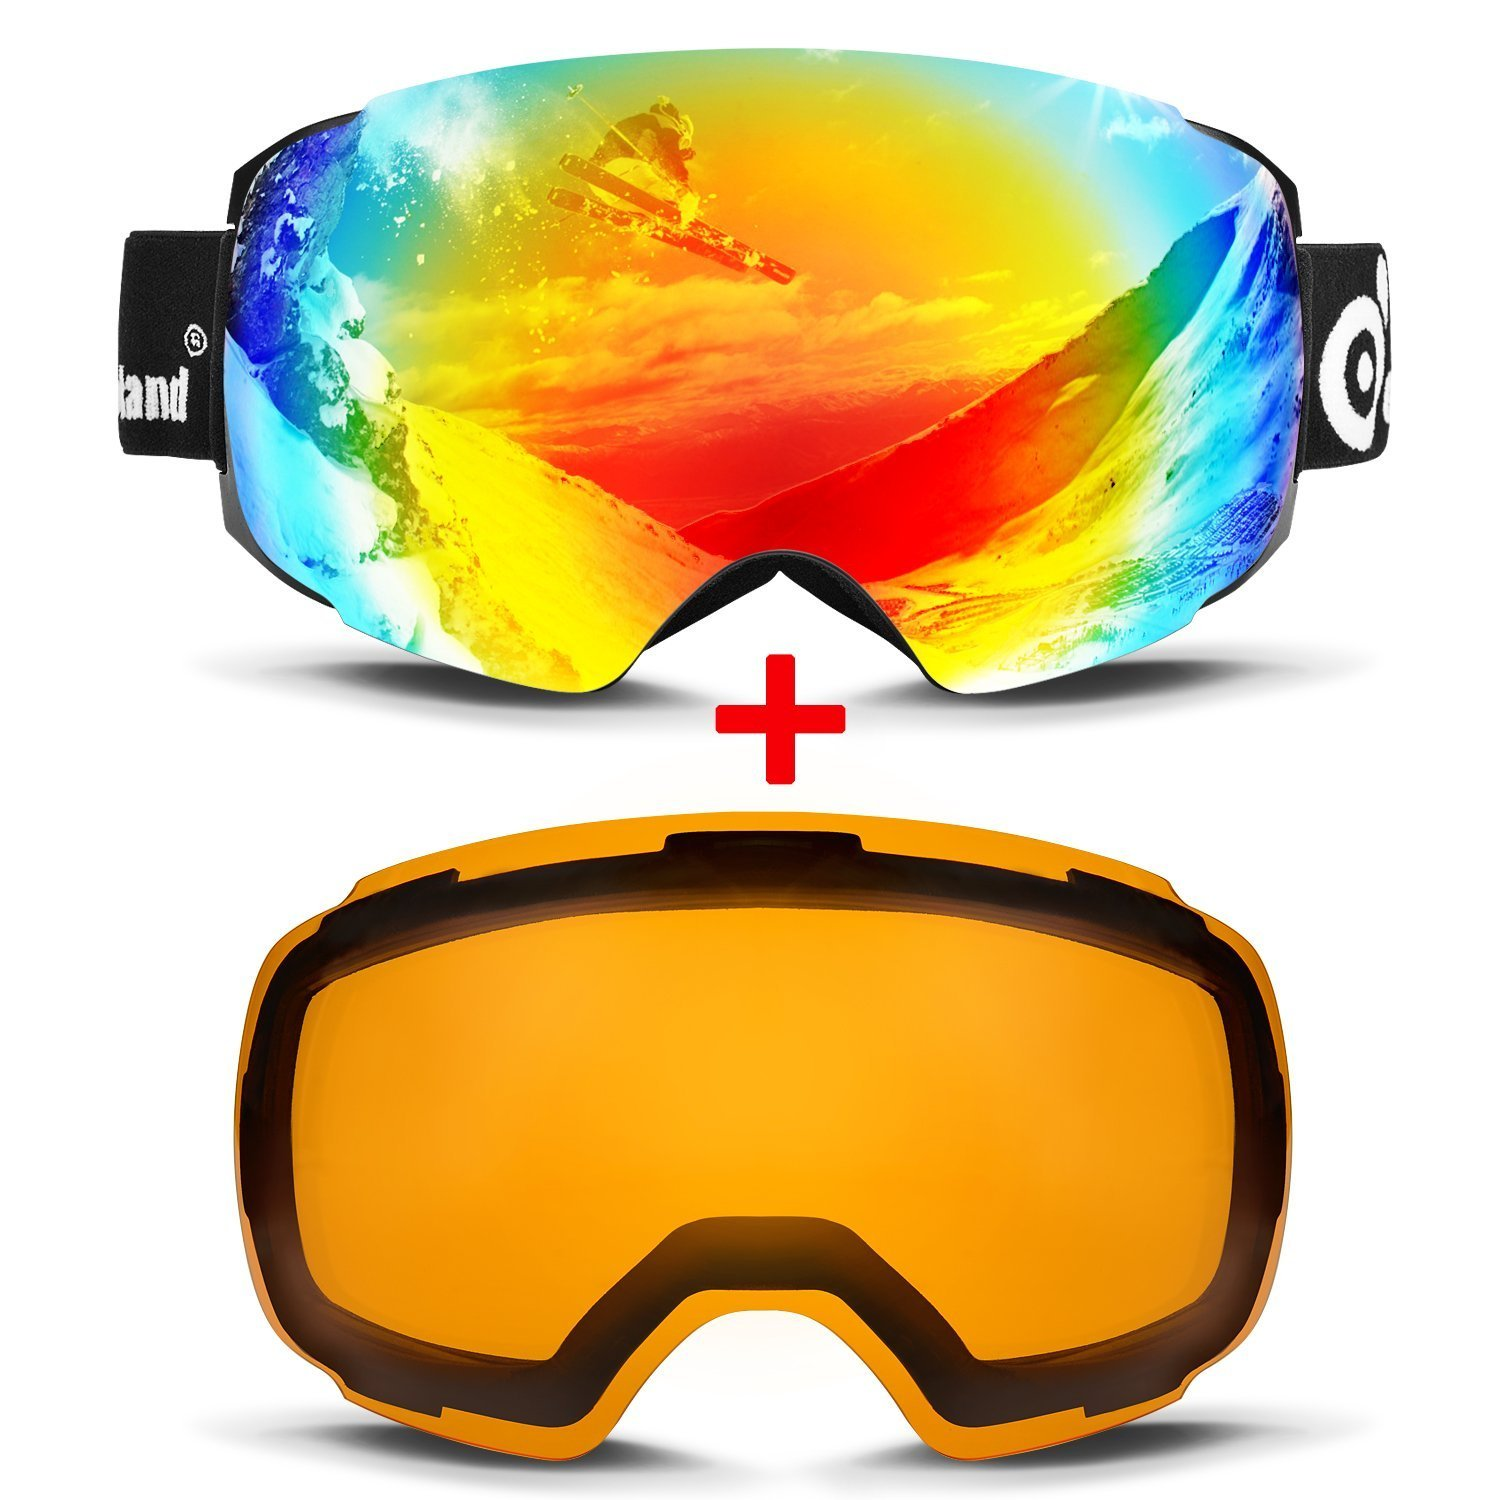 Odoland Magnetic Interchangeable Ski Goggles with 2 Lens, Large Spherical Frameless Snow Goggles for Men & Women, OTG and UV400 Protection by Odoland